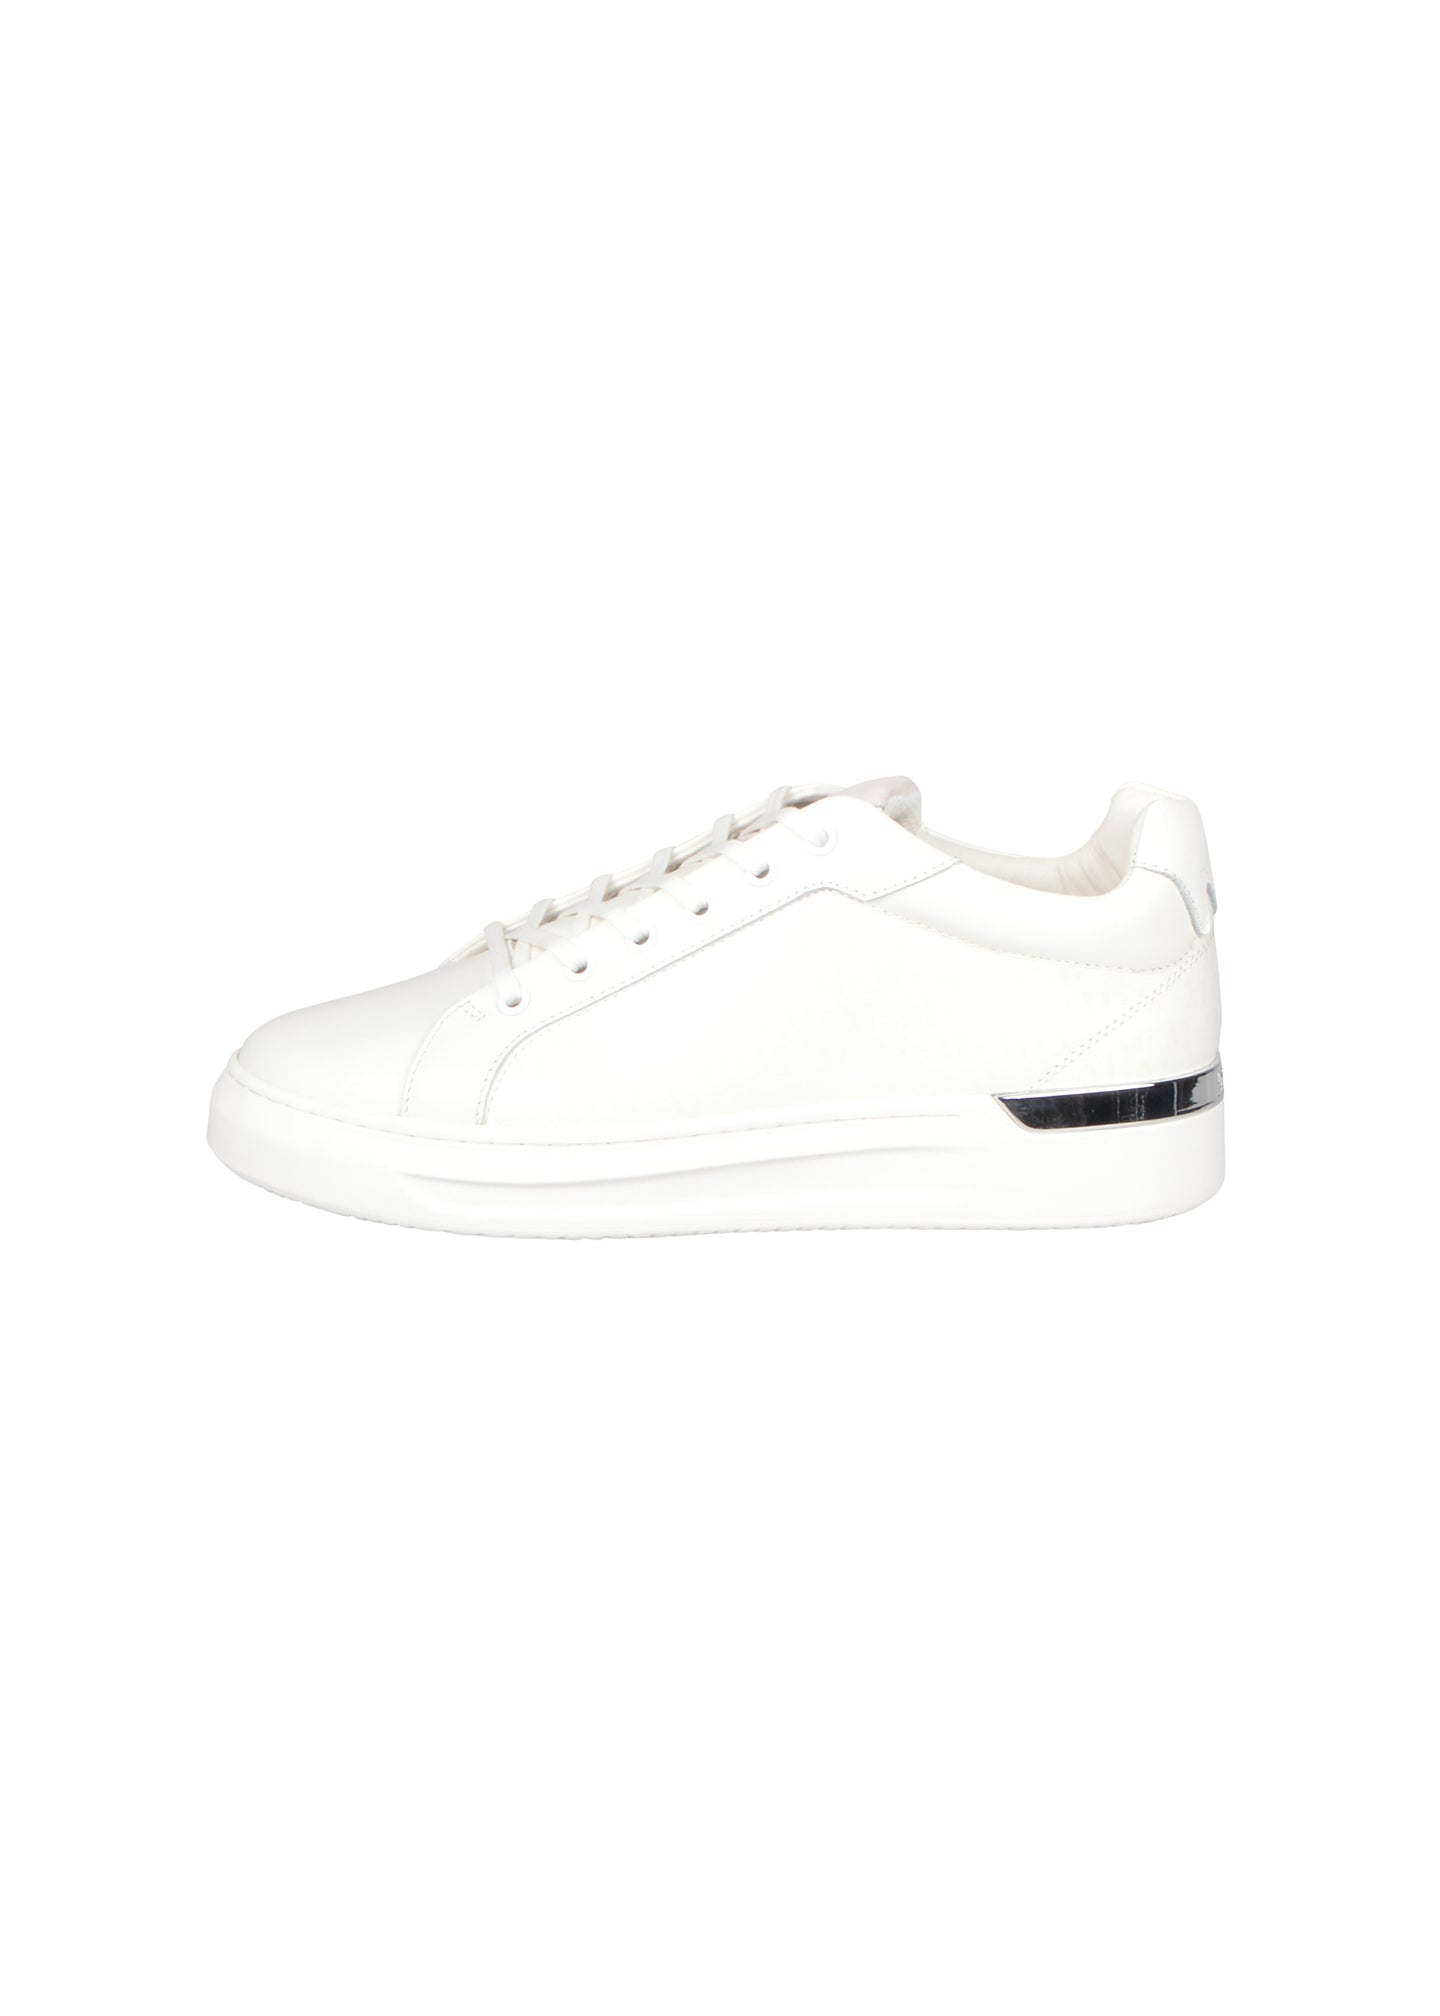 Mallet- GRFTR Monogram Classic Low Trainer - 100056 - White